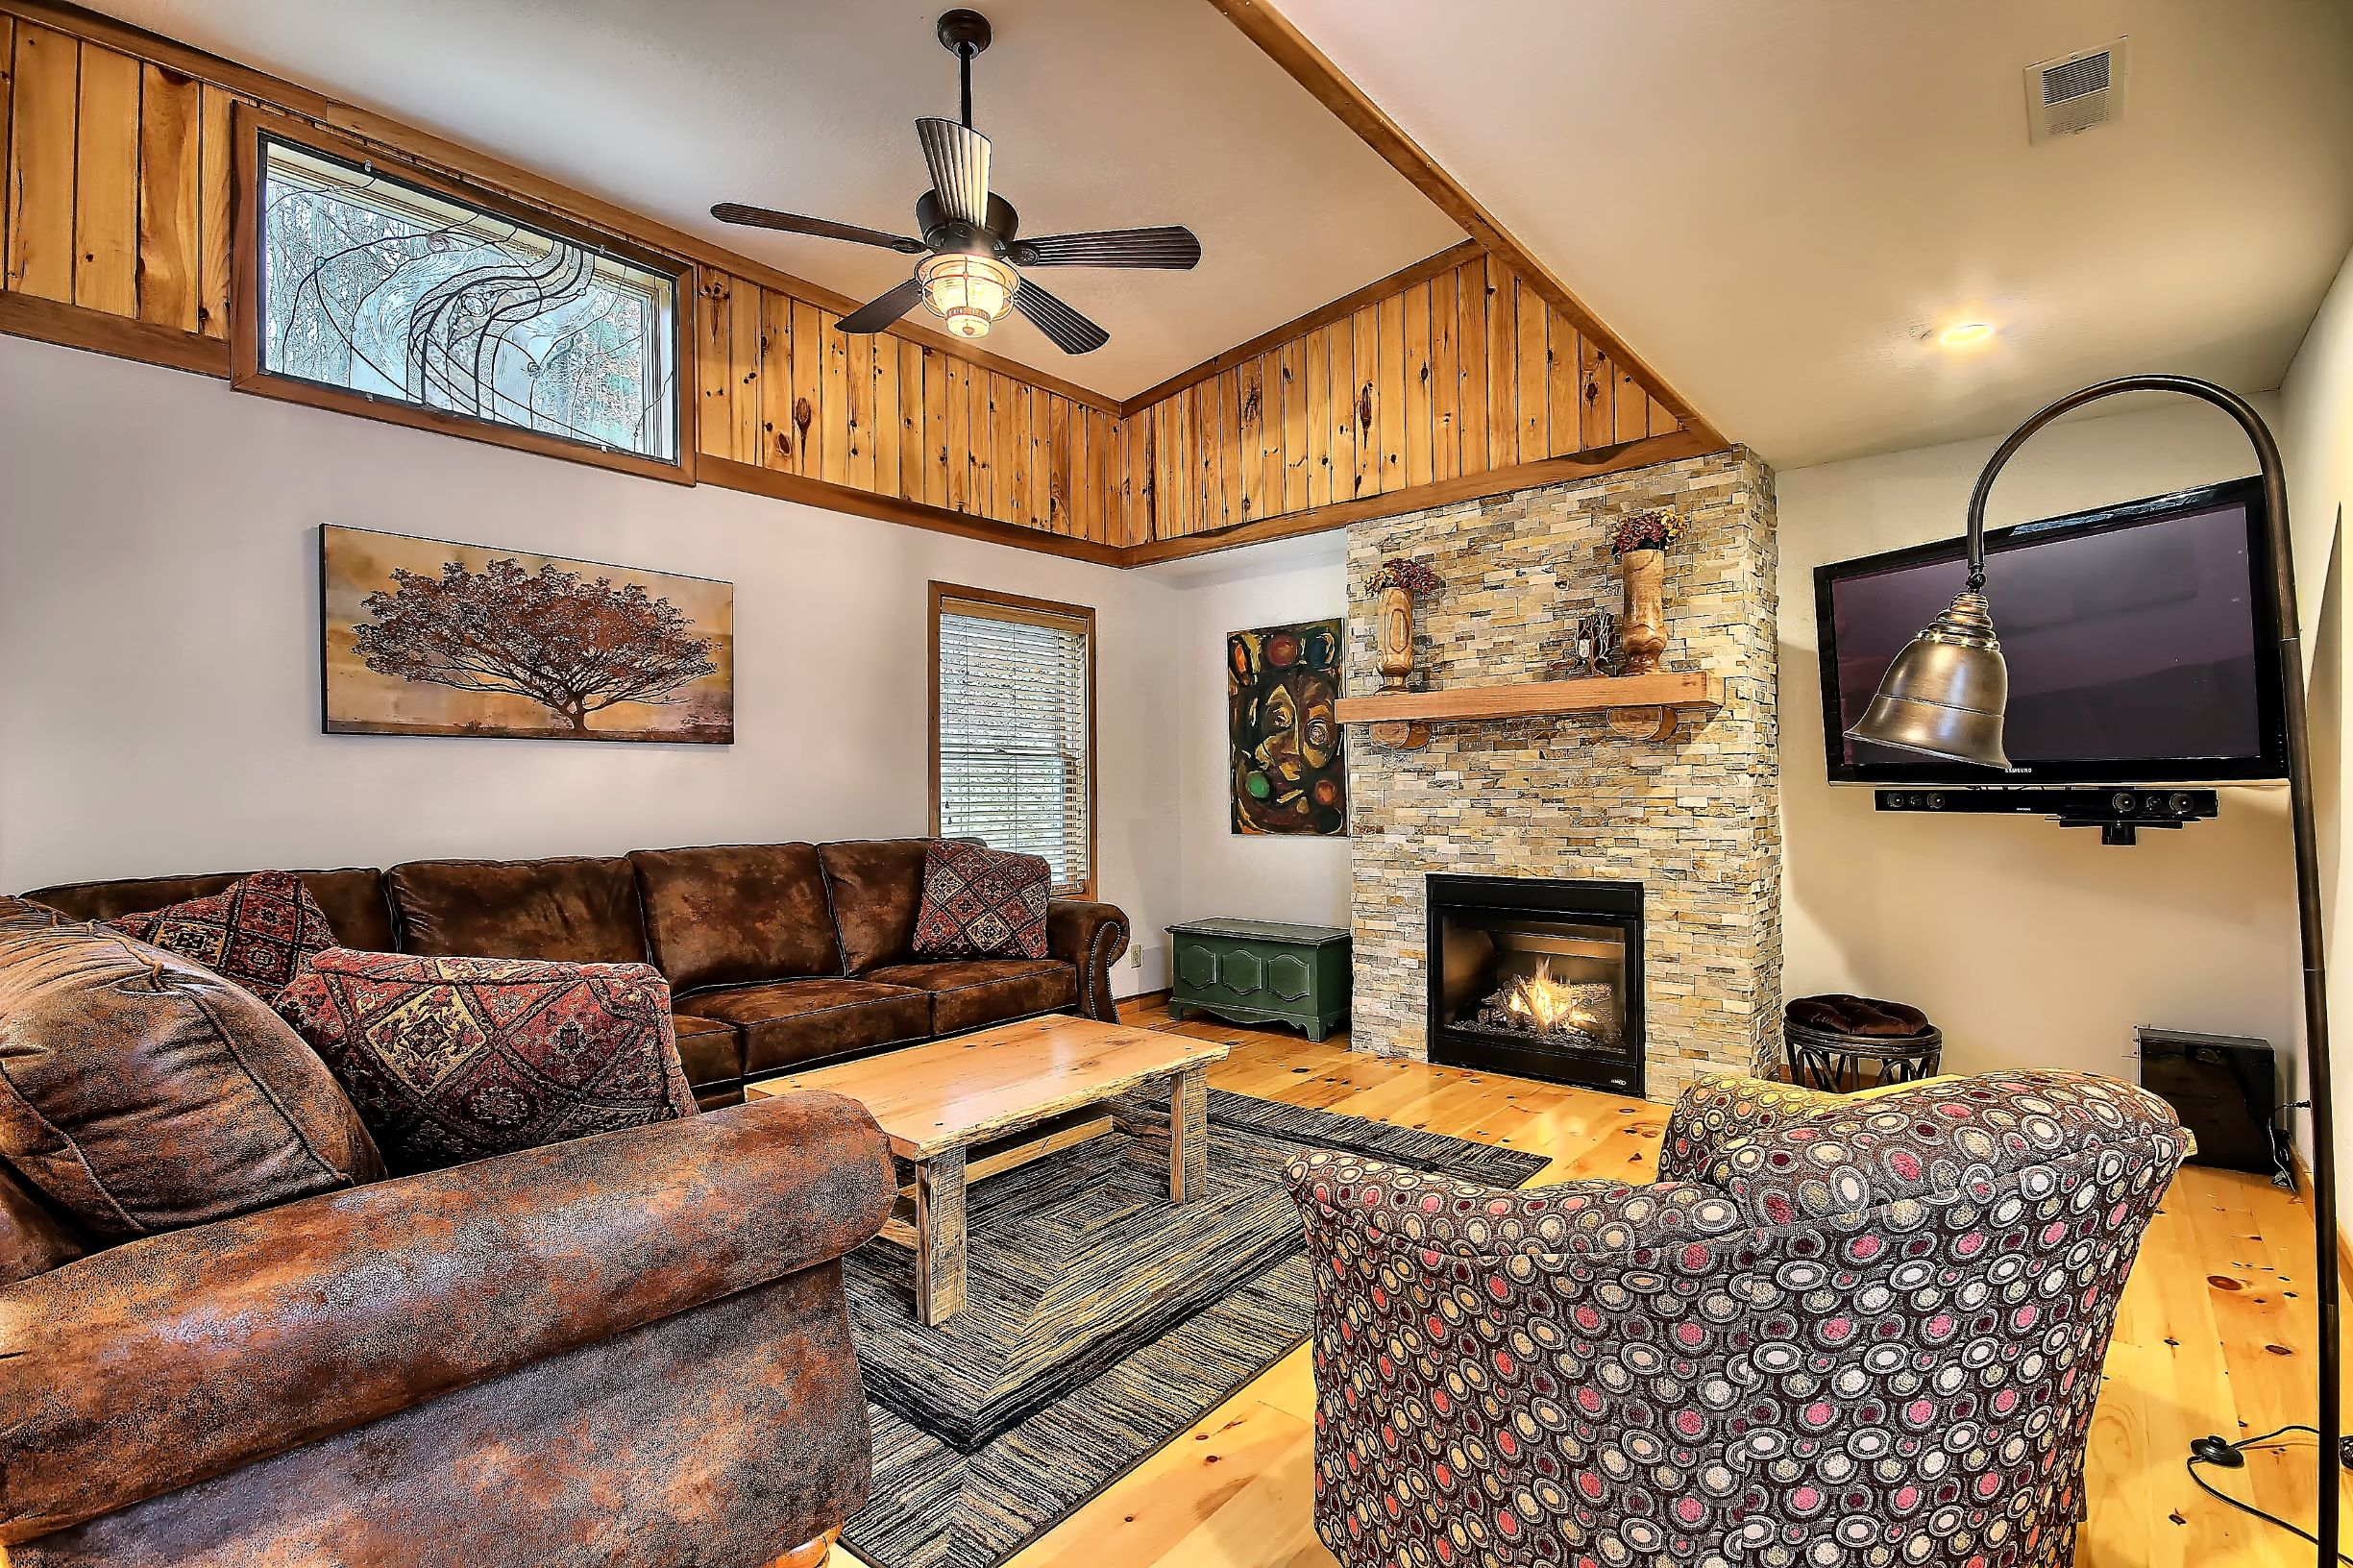 Living Room - Living area with gas fireplace and large screen smart tv with blue tooth soundbar.